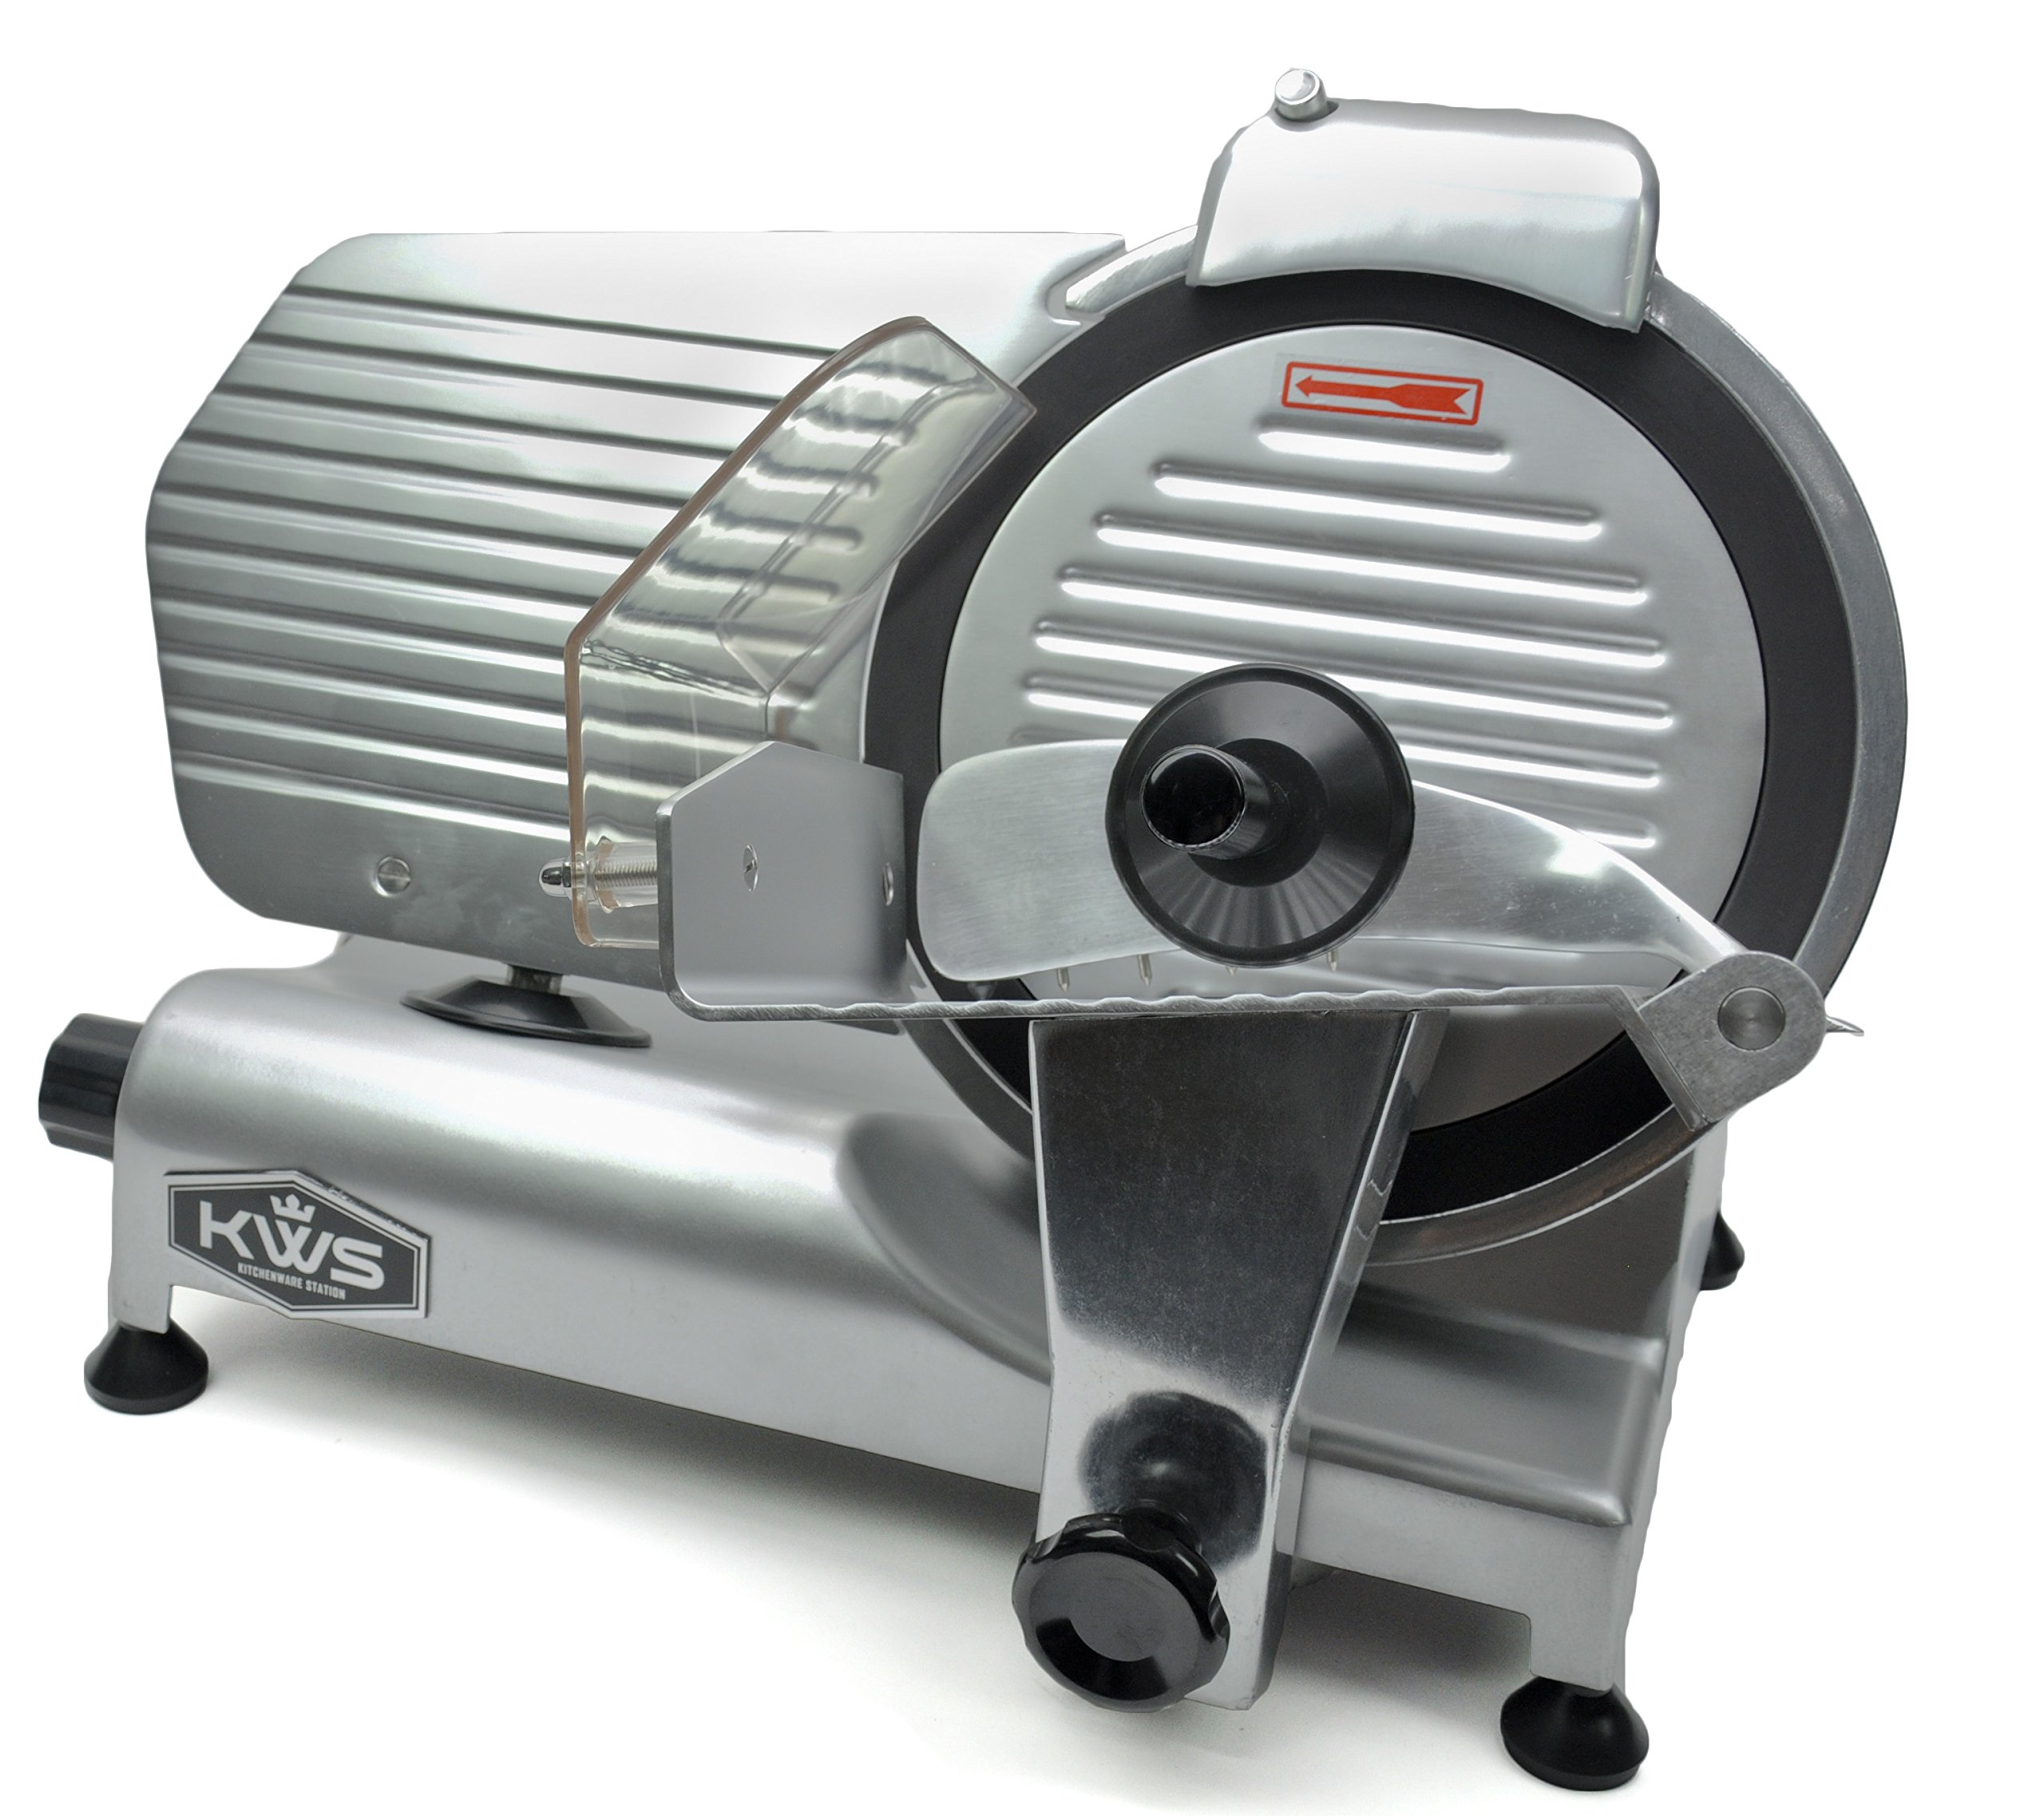 KWS Premium Commercial 320w Electric Meat Slicer 10'' with Non-sticky Teflon Blade, Frozen Meat/ Cheese/ Food Slicer Low Noises Commercial and Home Use